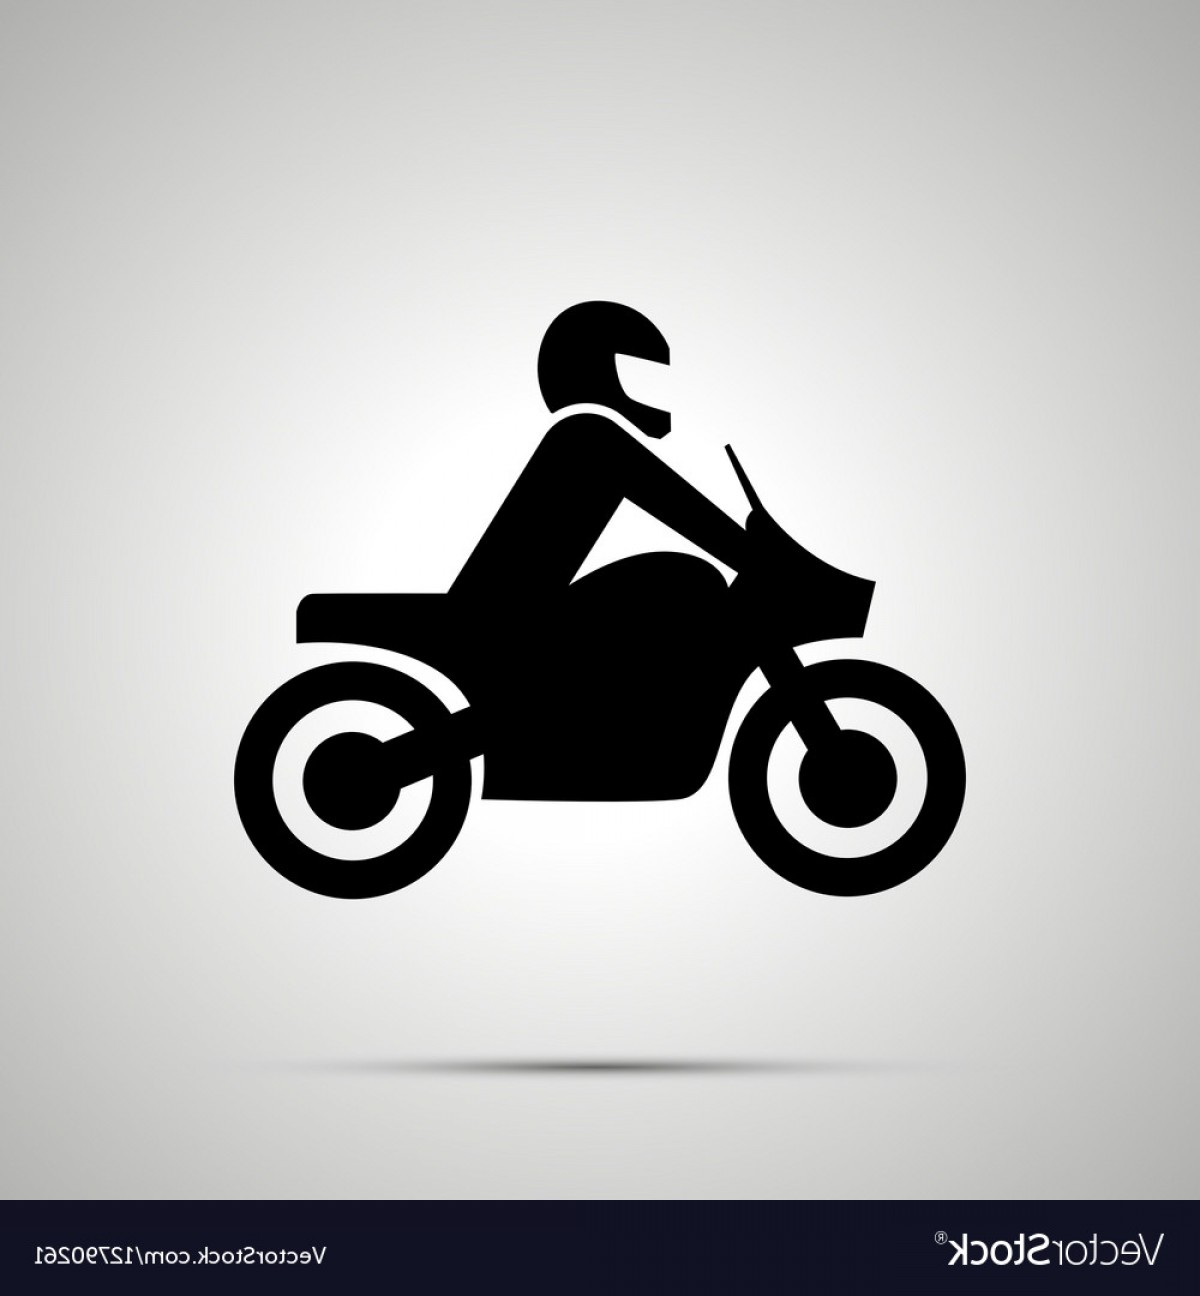 Stylized Vector Motorcycle: Motorcyclist Simple Black Icon Vector